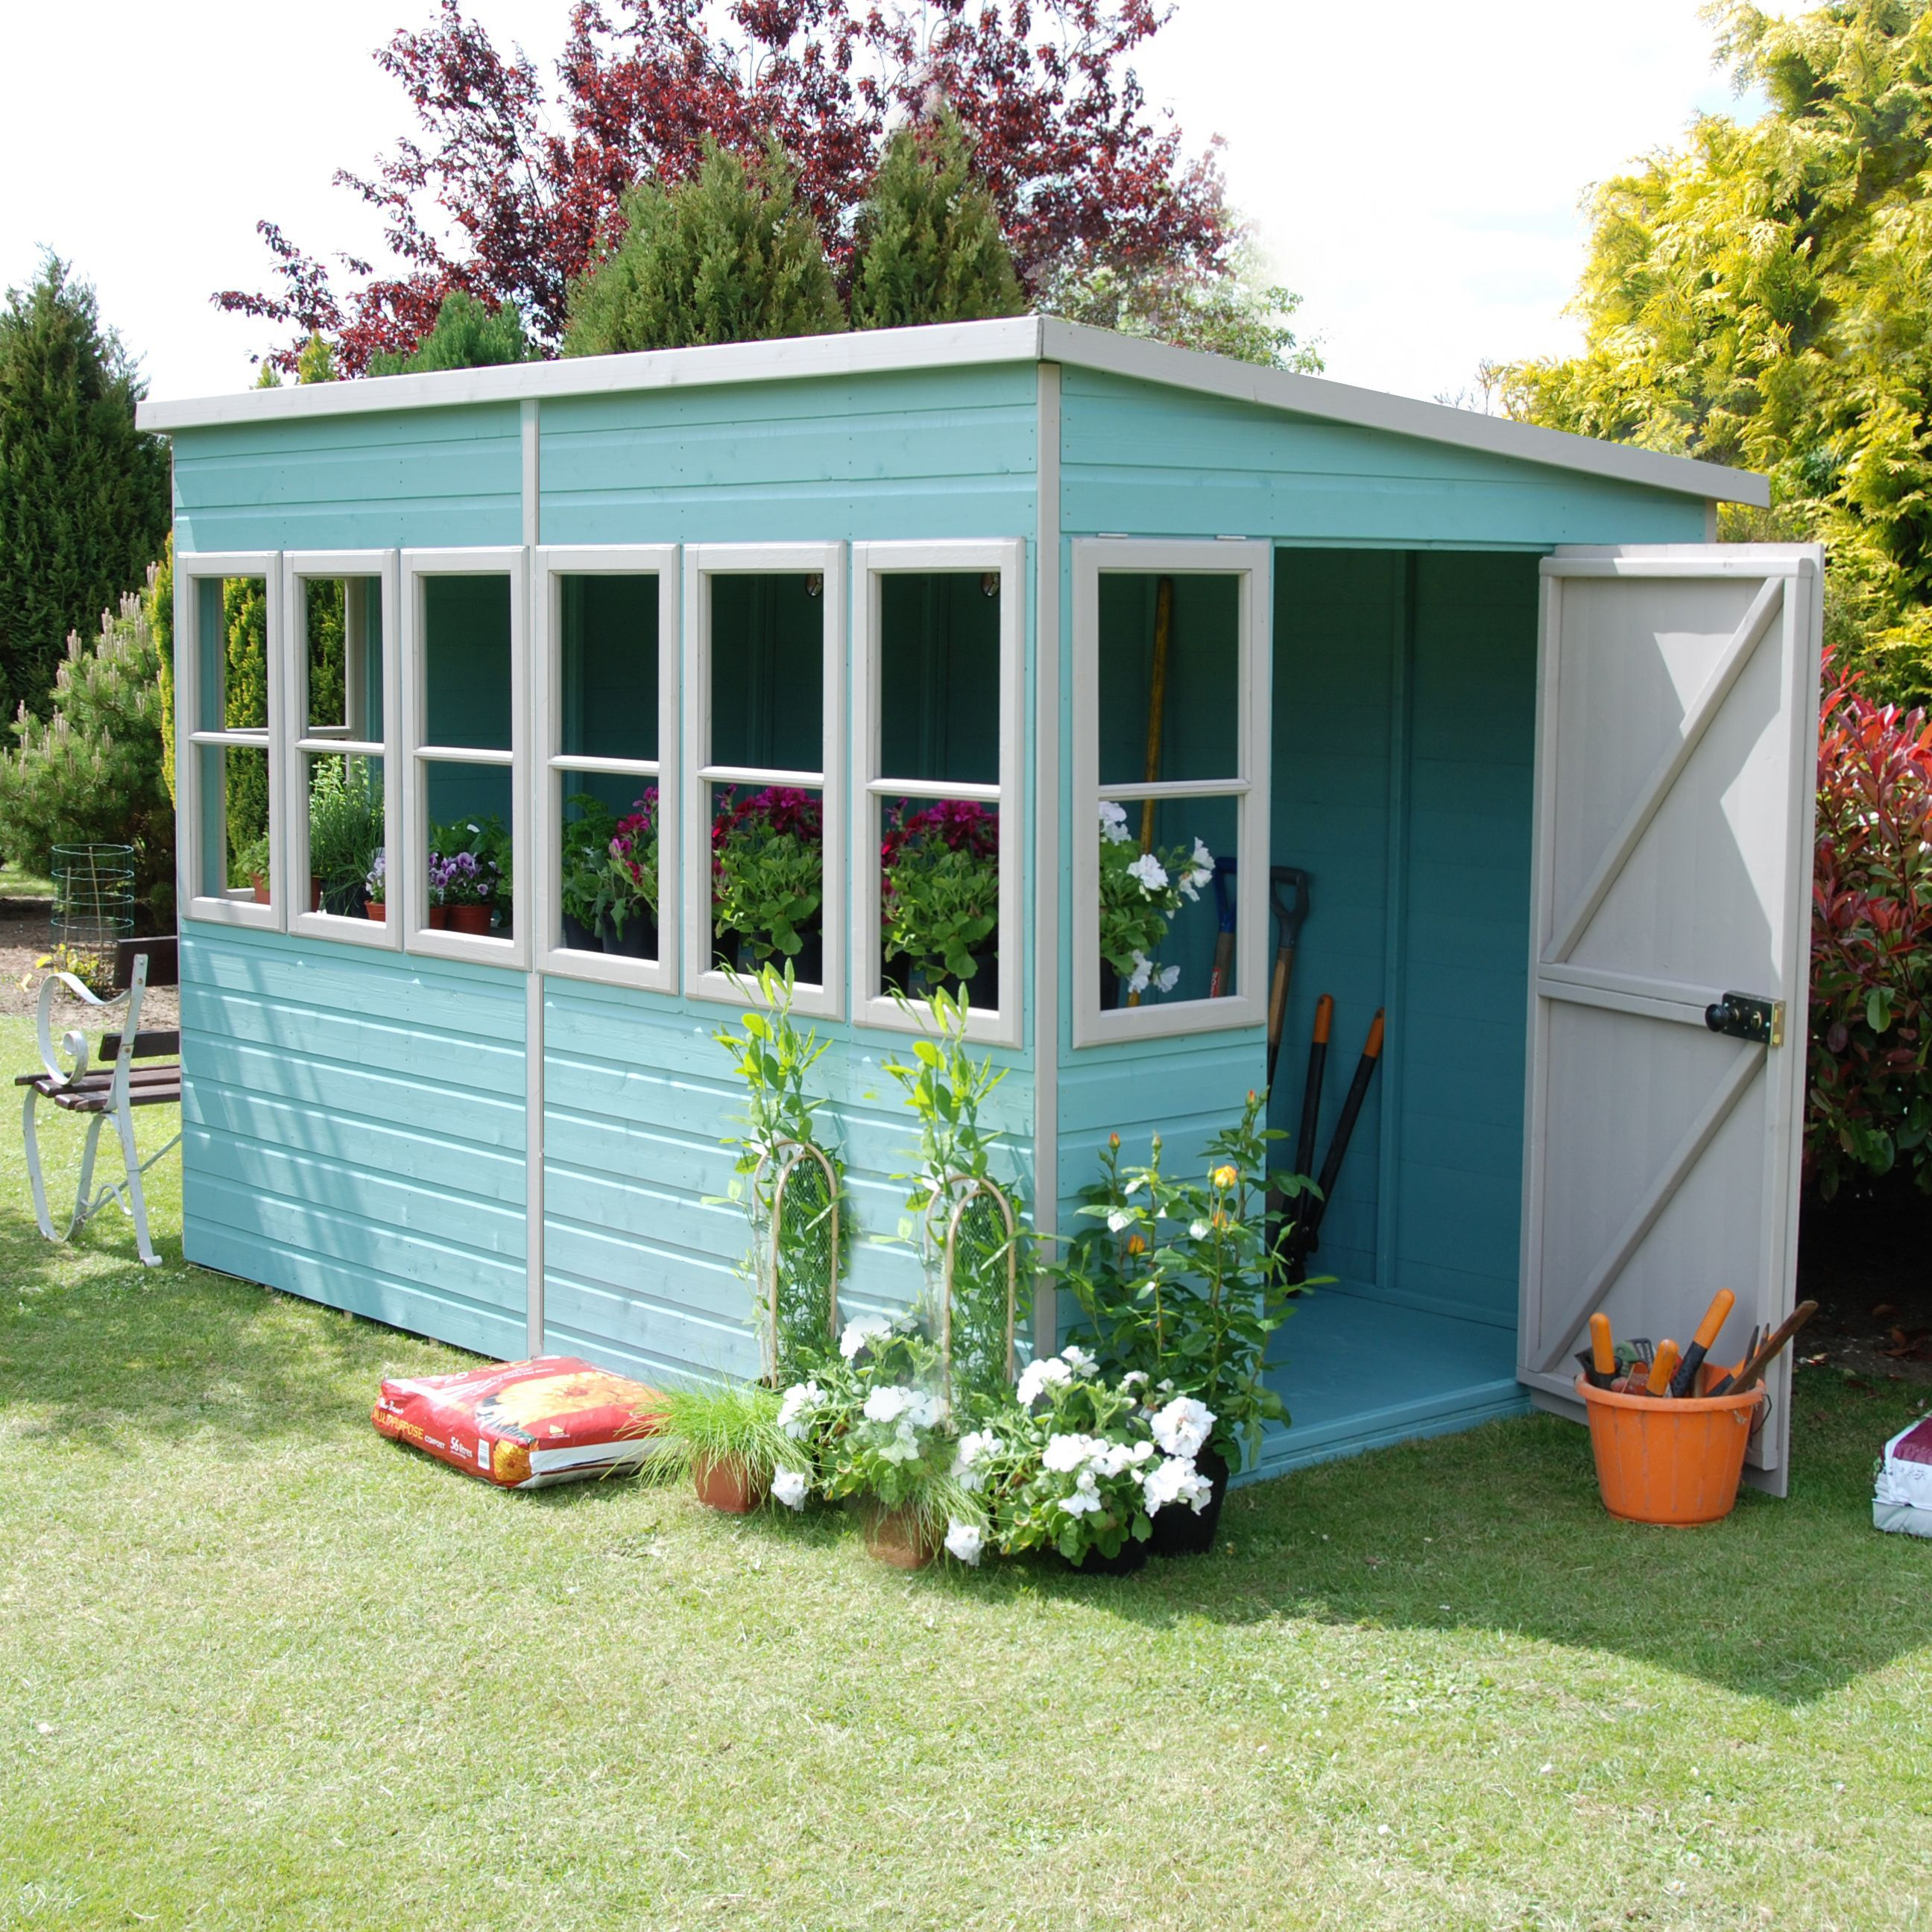 Shed buying guide | Ideas & Advice | DIY at B&Q